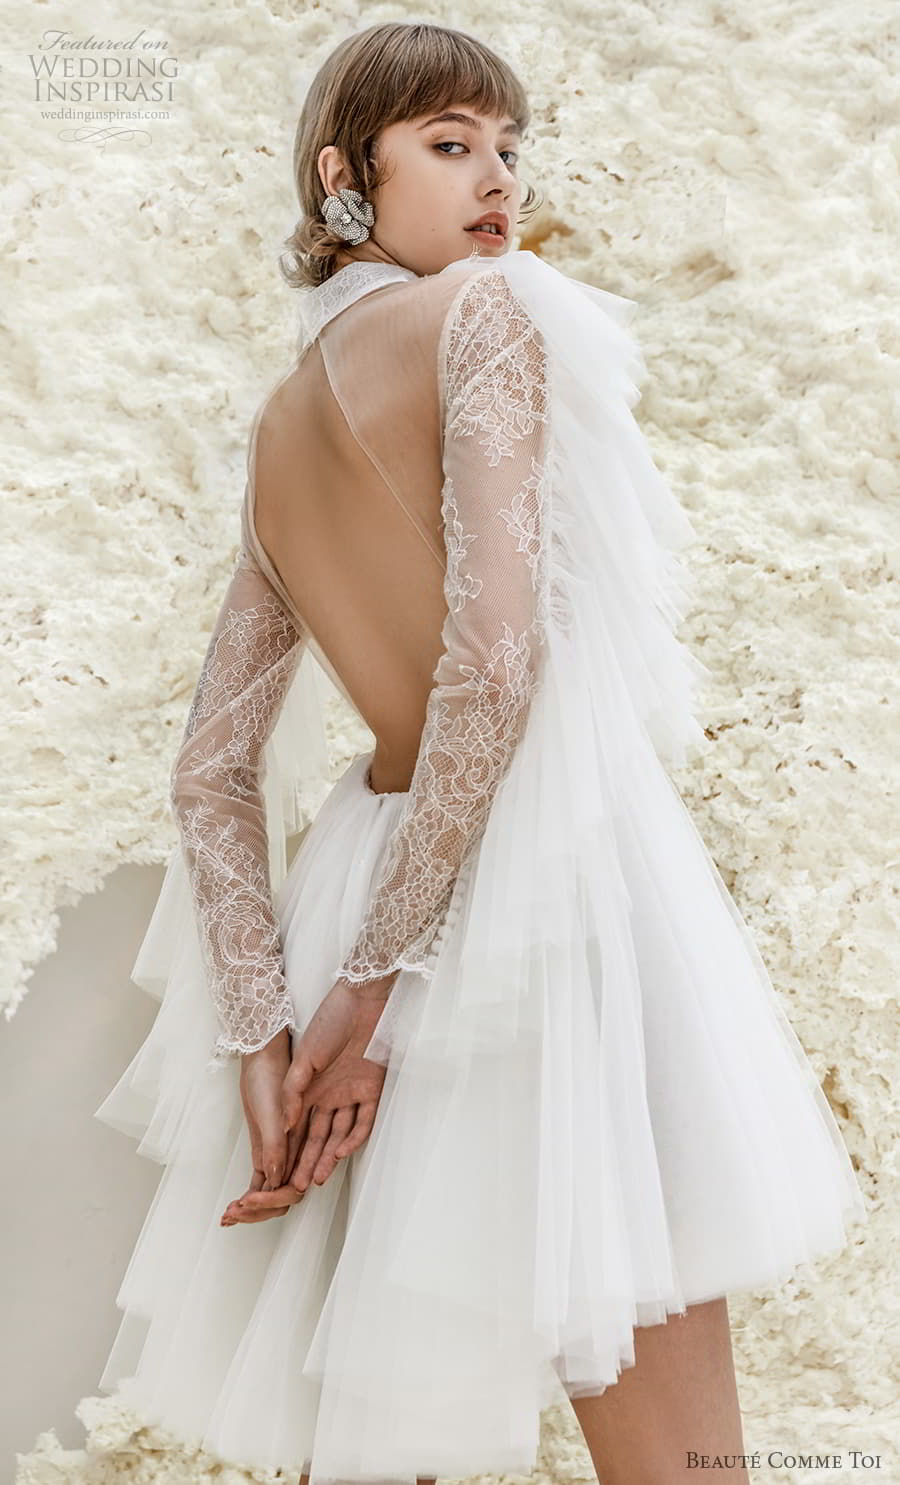 beaute comme toi spring 2022 bridal long tiered sleeves collar neck heavily embellished bodice pretty short wedding dress keyhole back (maeve) zbv